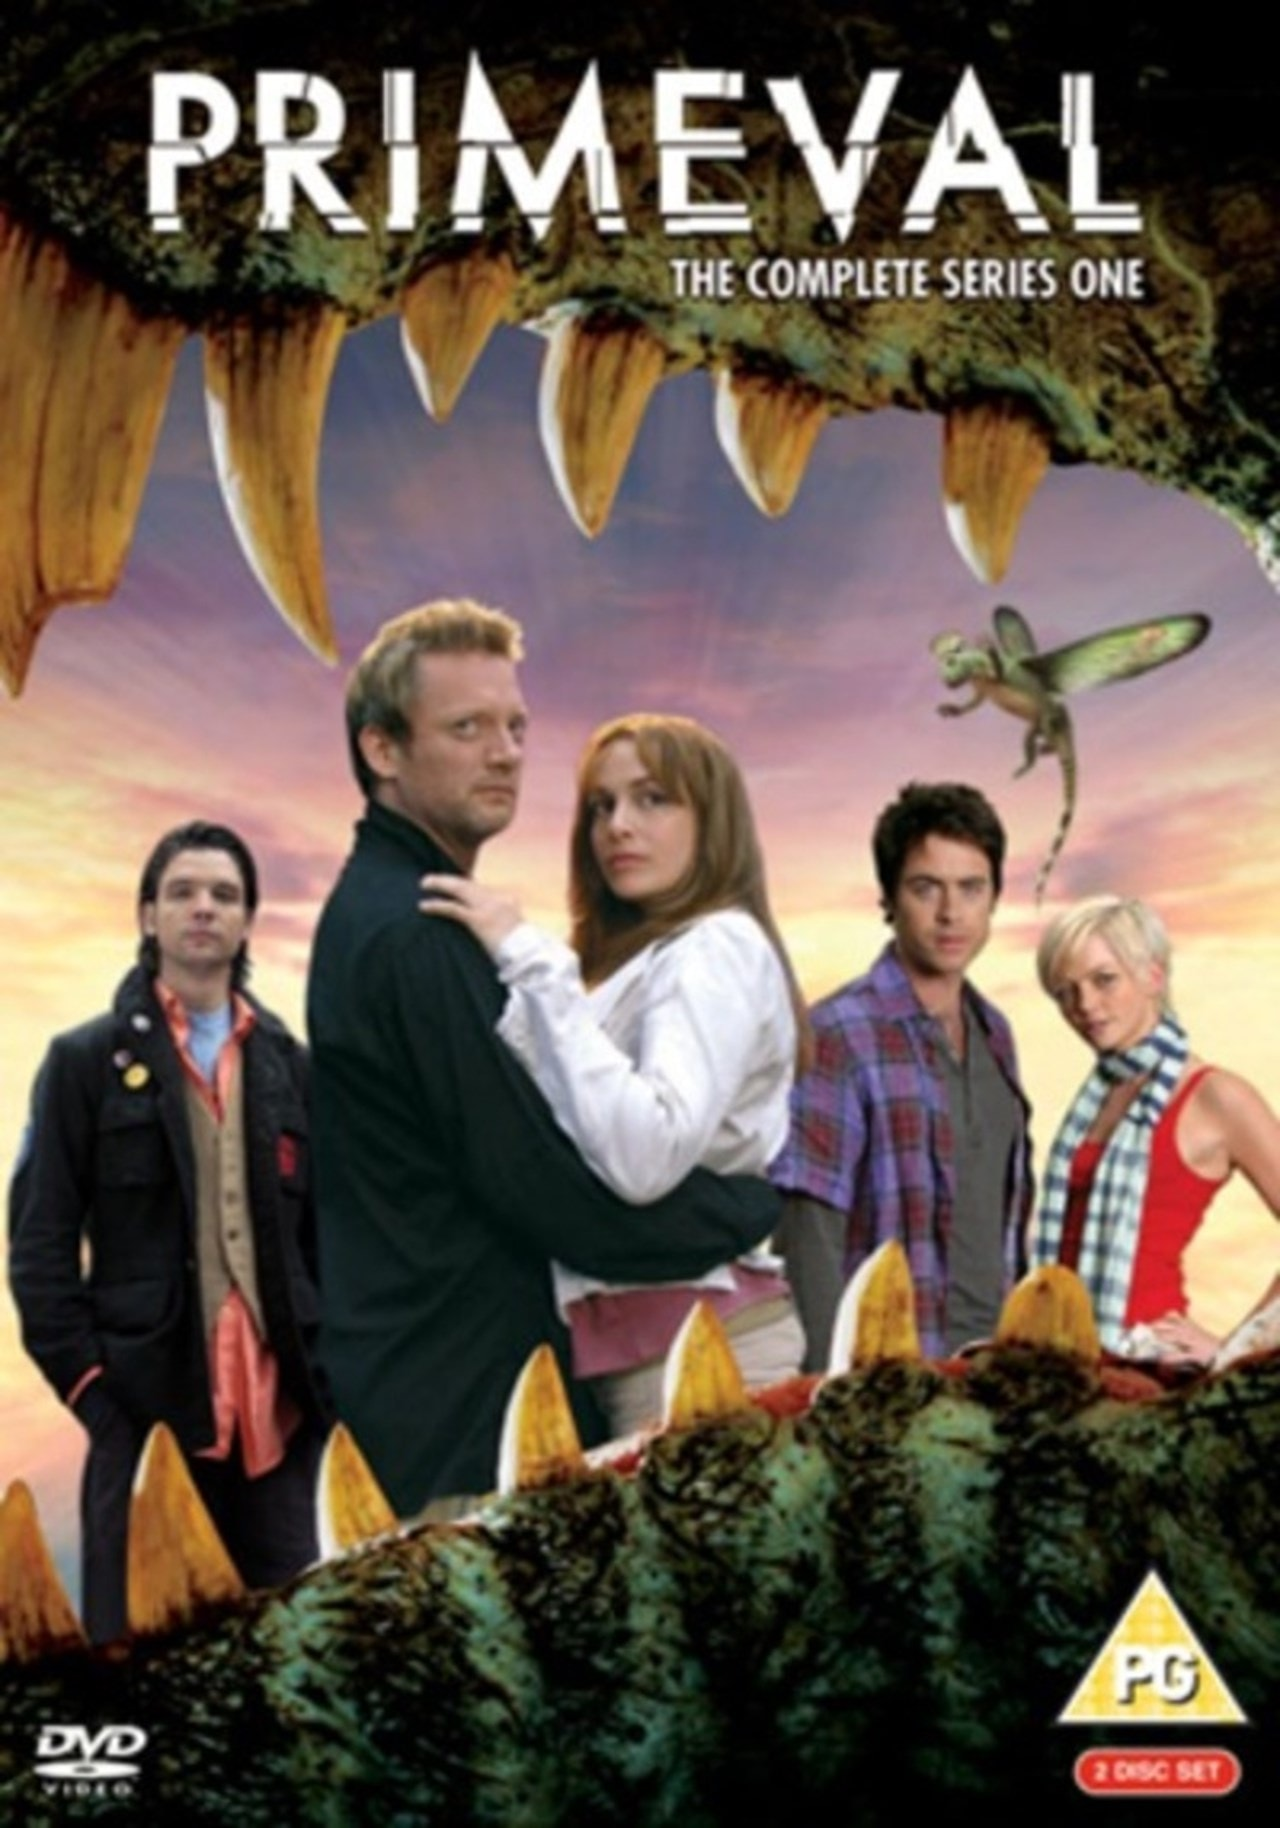 Primeval: The Complete Series 1 - 1